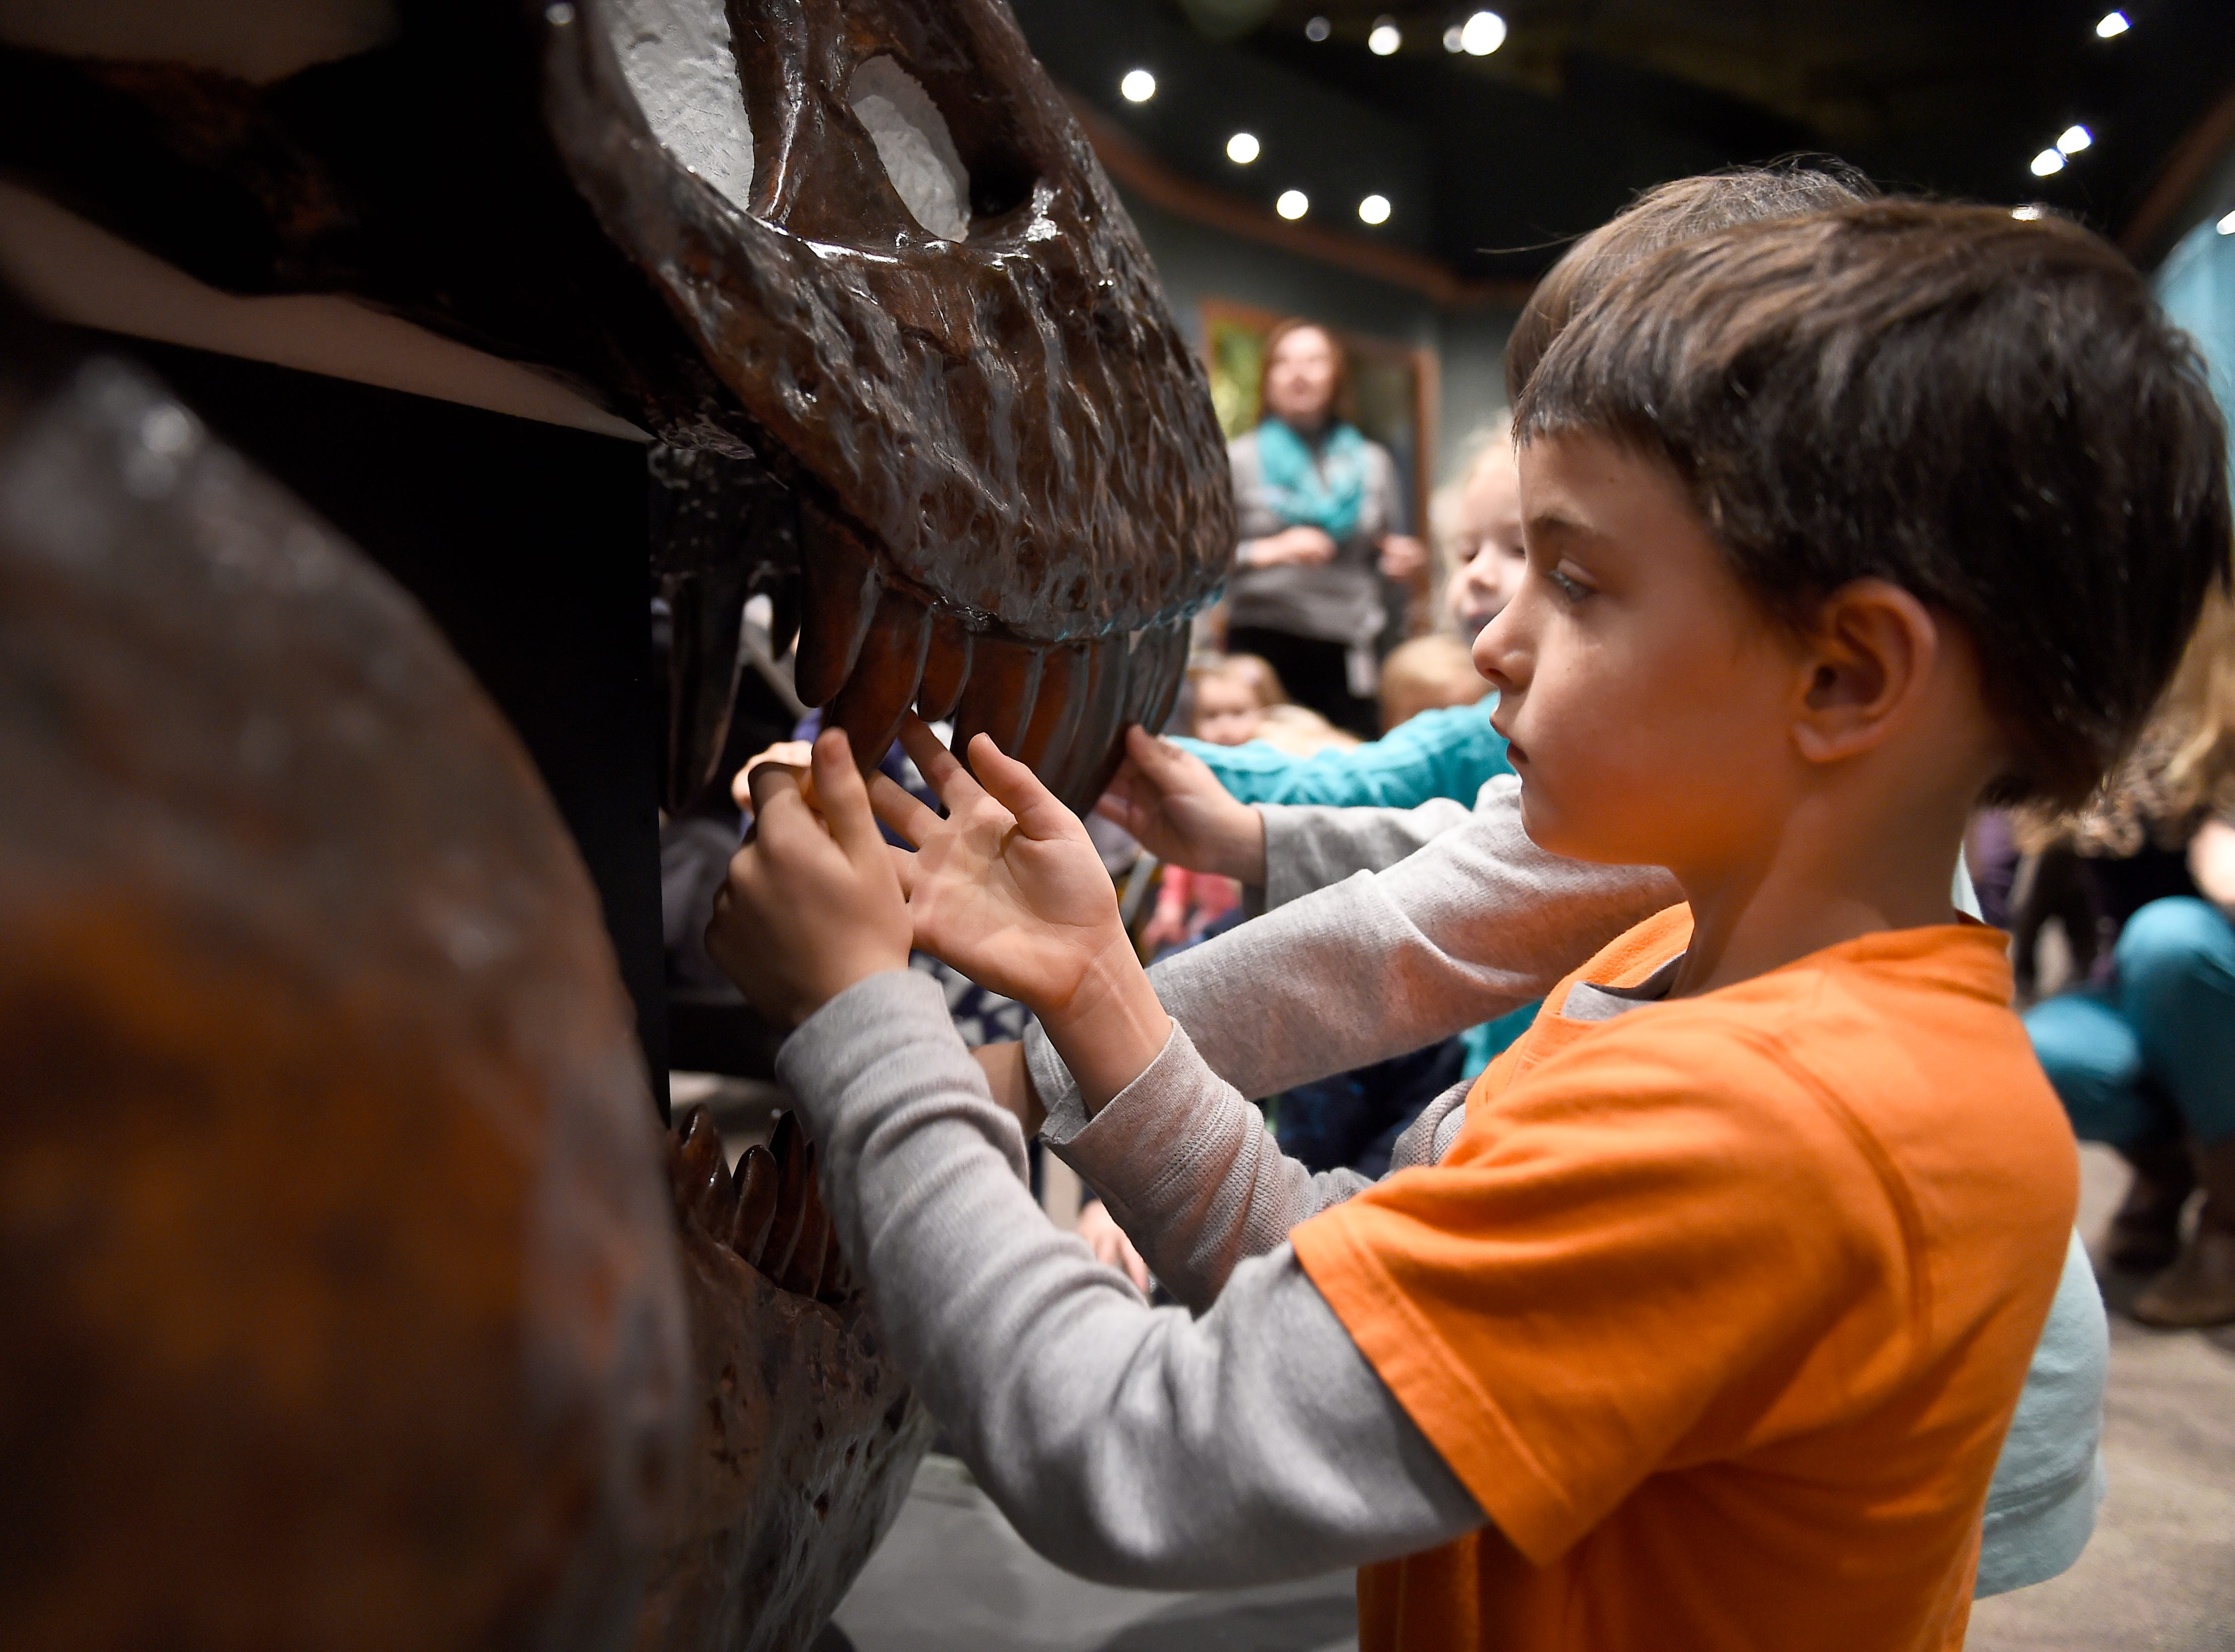 Seven year-old Preston Zoder inspects the teeth of a tyrannosaurus rex during a free stroller tour in the Geology and Fossil History gallery at the McClung Museum of Natural History and Culture, Monday, Jan. 12, 2014. The event is part of a monthly series for young children.